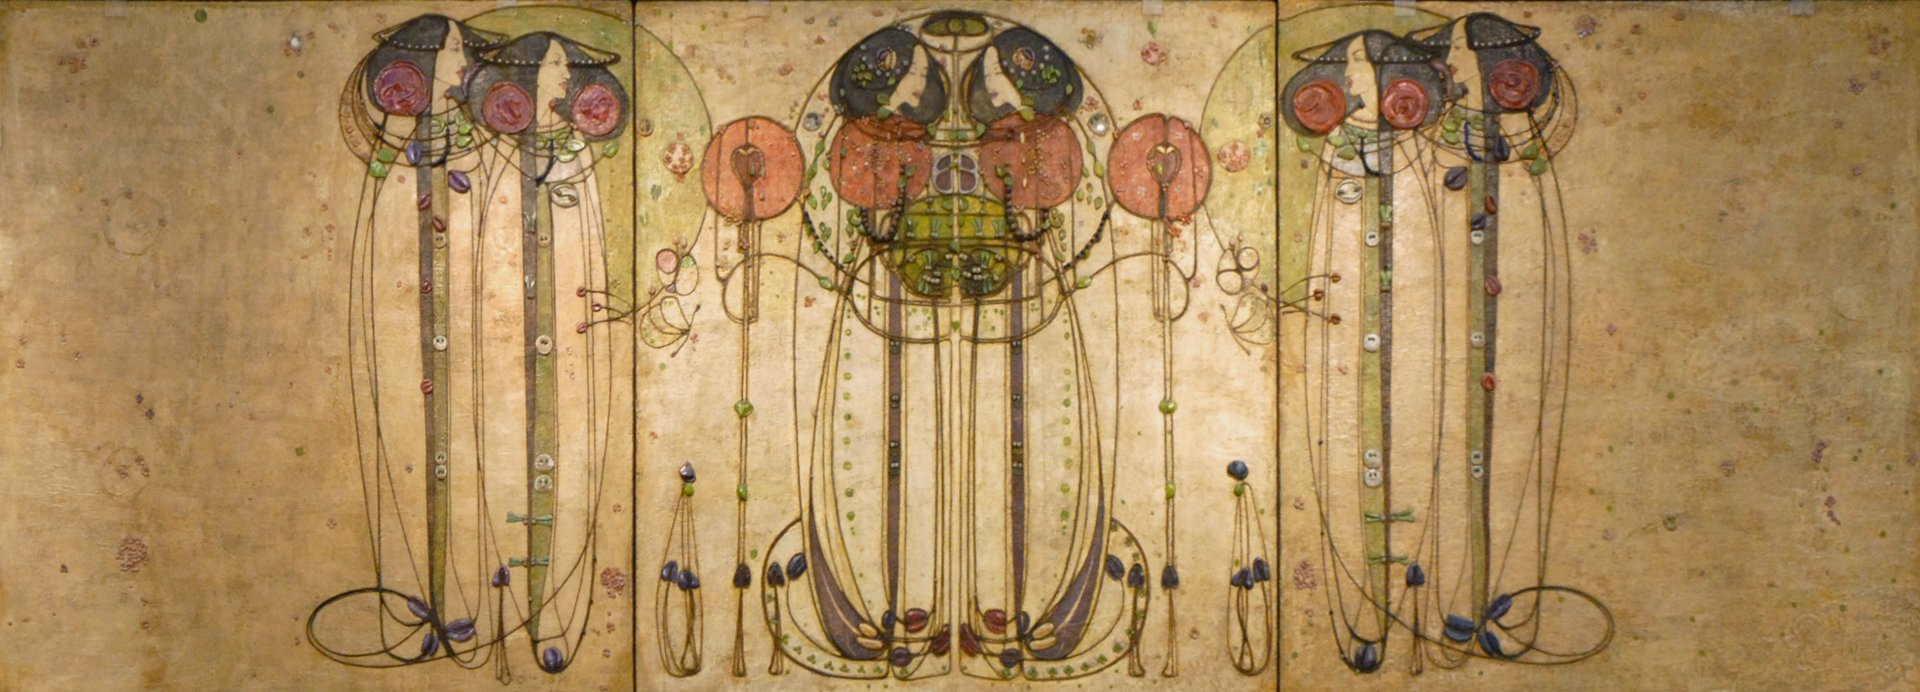 file the wassail de charles rennie mackintosh glasgow 3802874247 jpg wikimedia commons. Black Bedroom Furniture Sets. Home Design Ideas